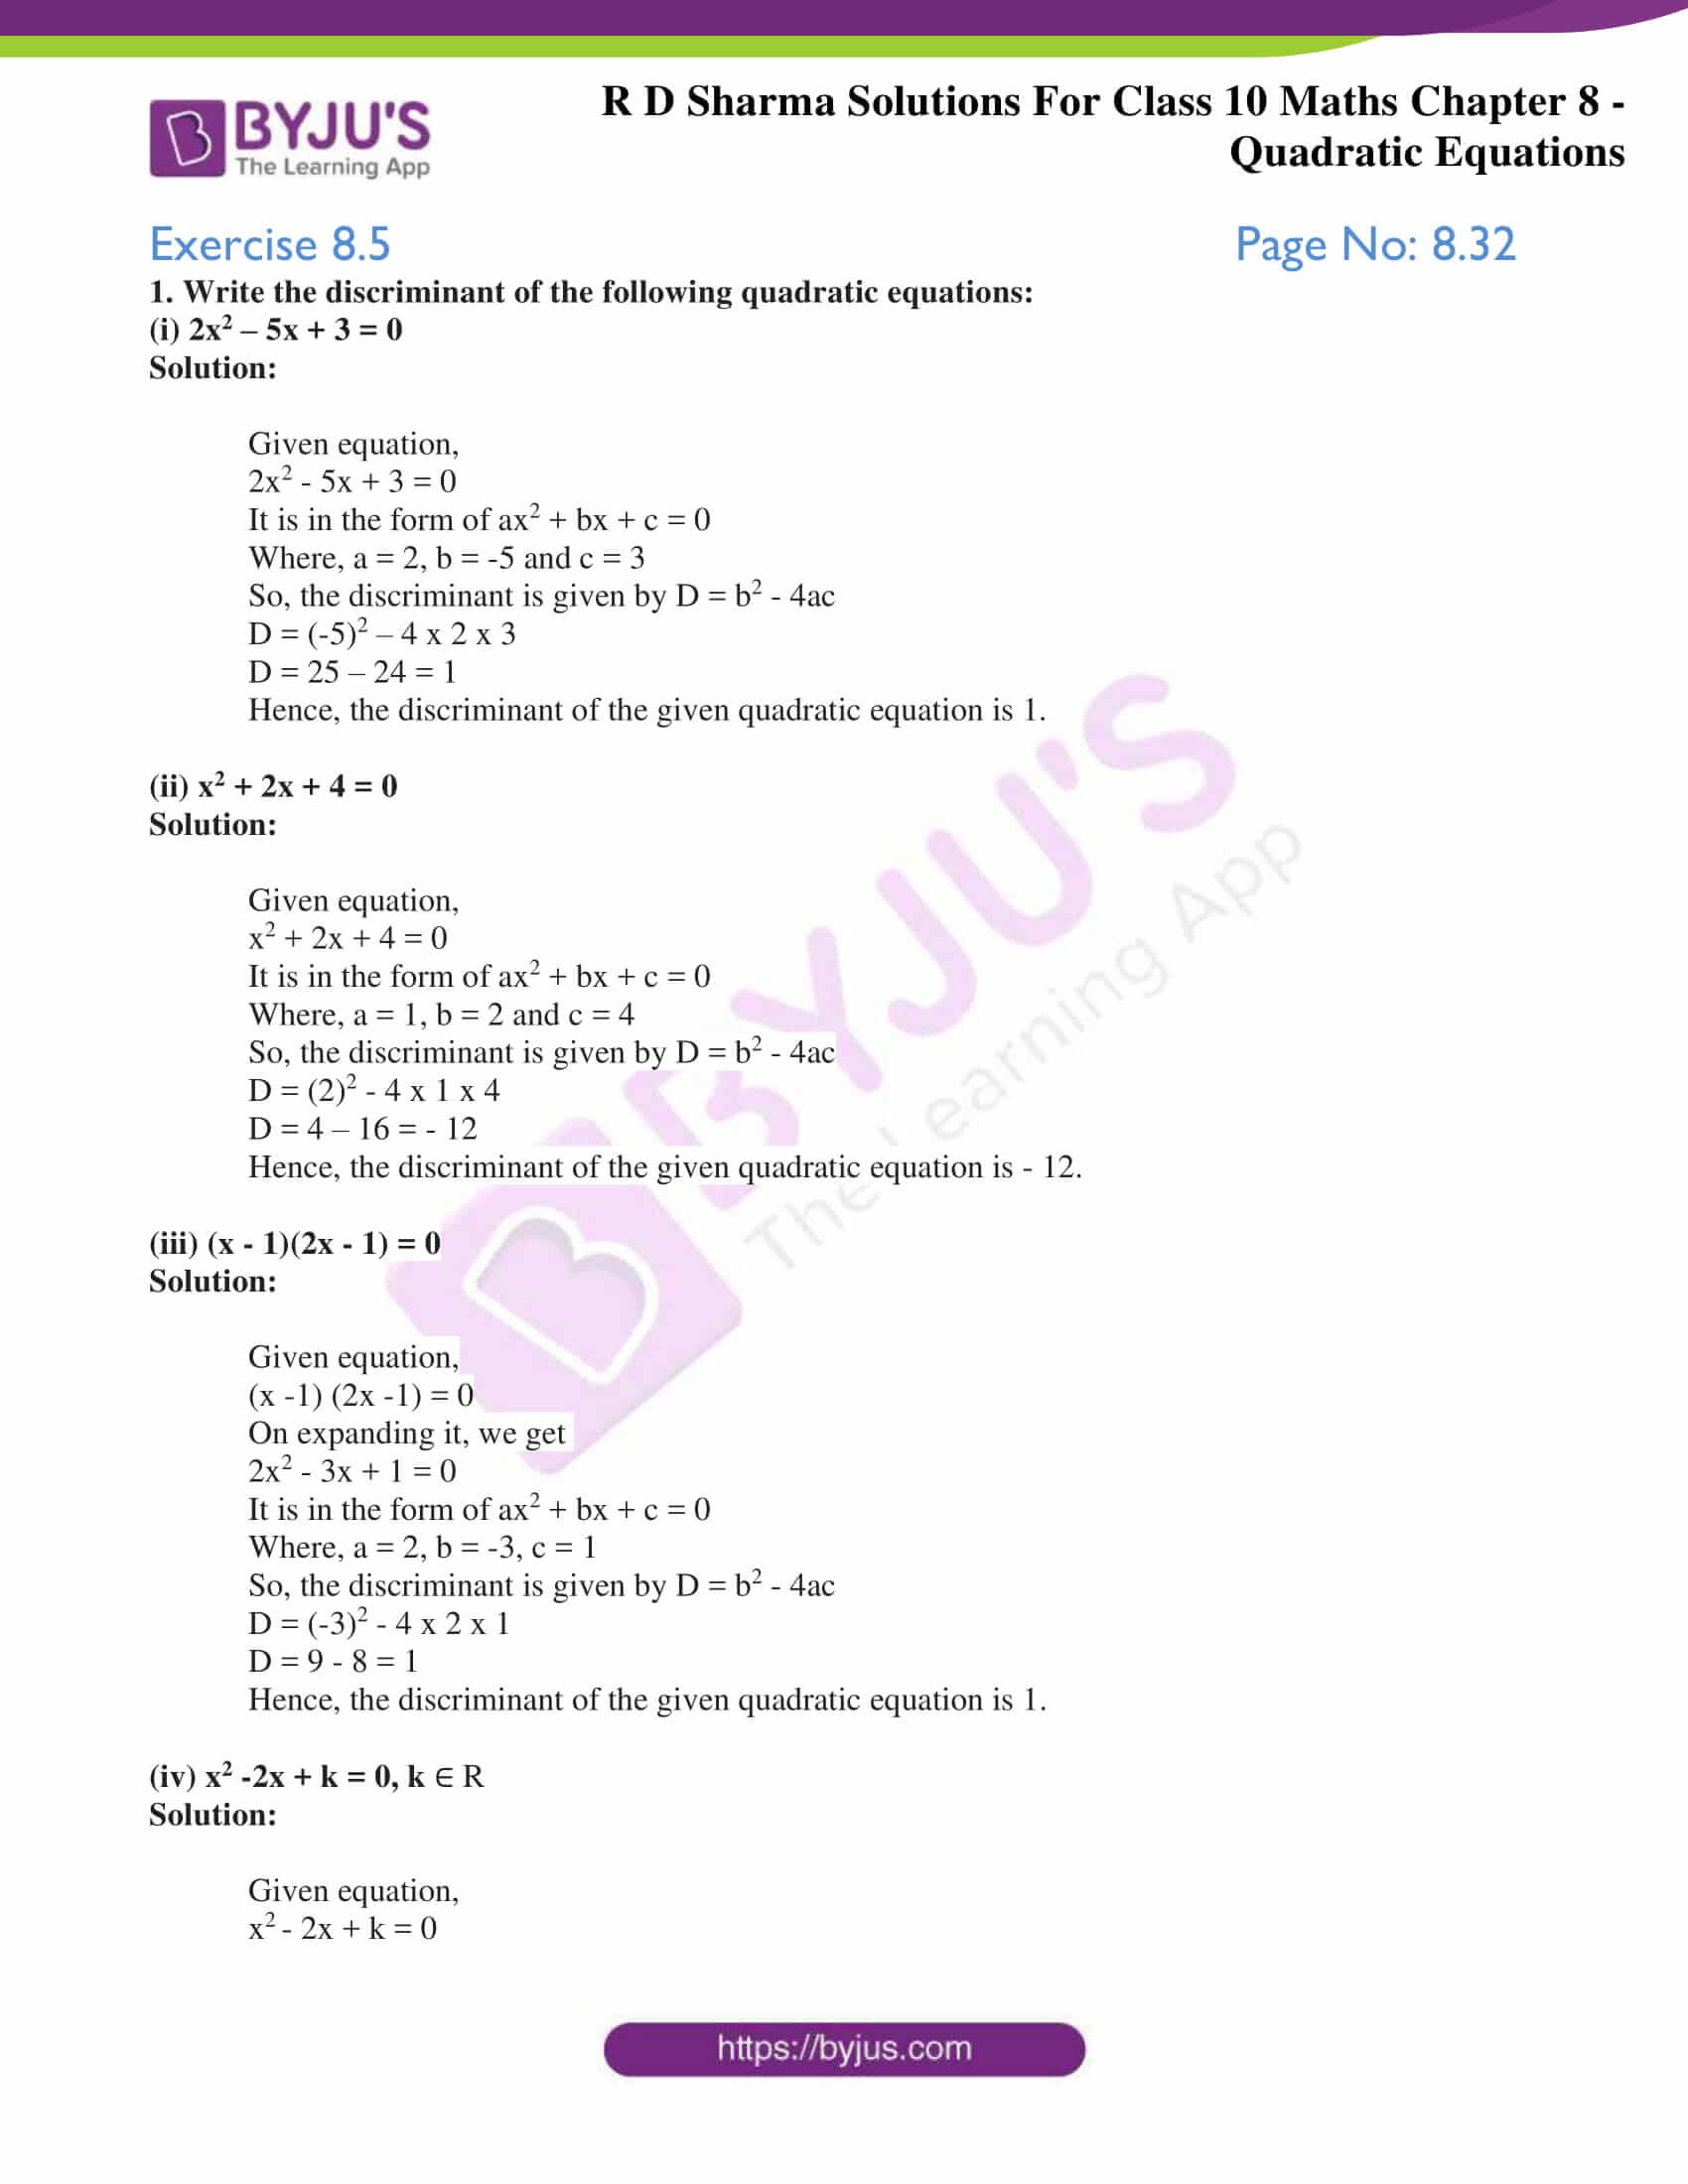 RD Sharma Solutions for Class 10 Chapter 8 Quadratic Equations Exercise 8.5 29